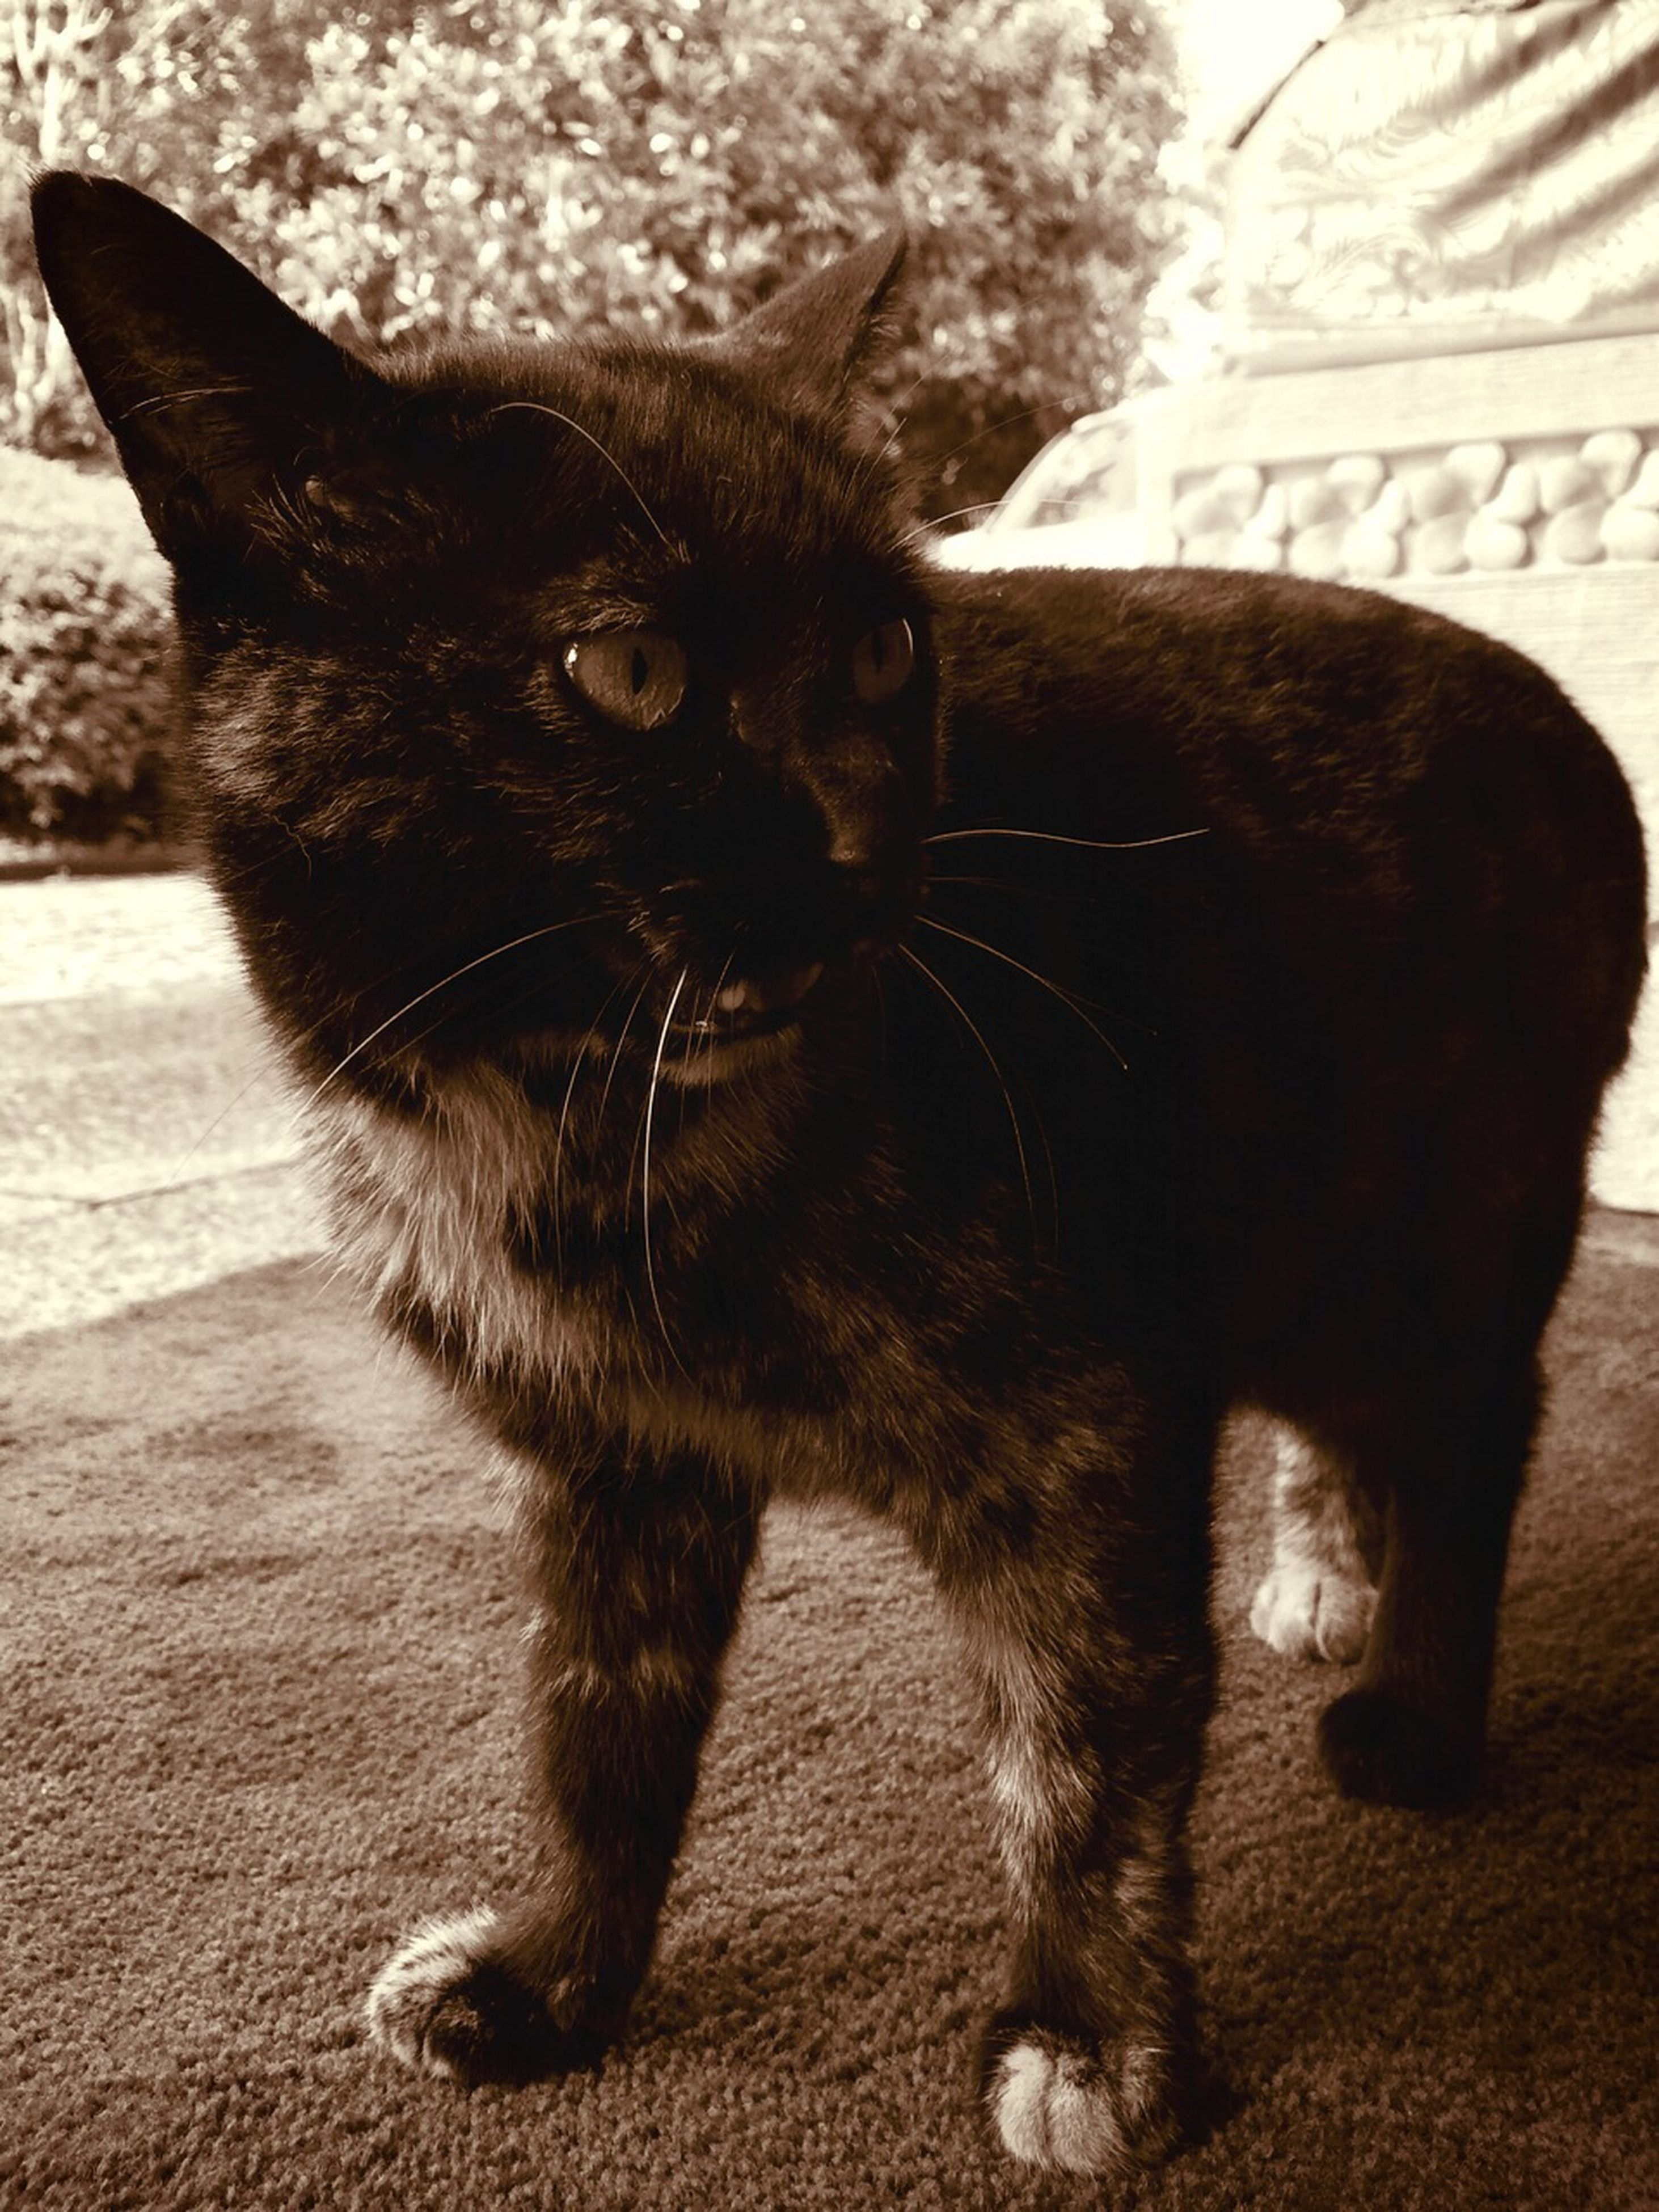 animal themes, one animal, domestic animals, mammal, pets, black color, domestic cat, close-up, feline, animal head, cat, portrait, whisker, looking at camera, sitting, zoology, no people, outdoors, front view, day